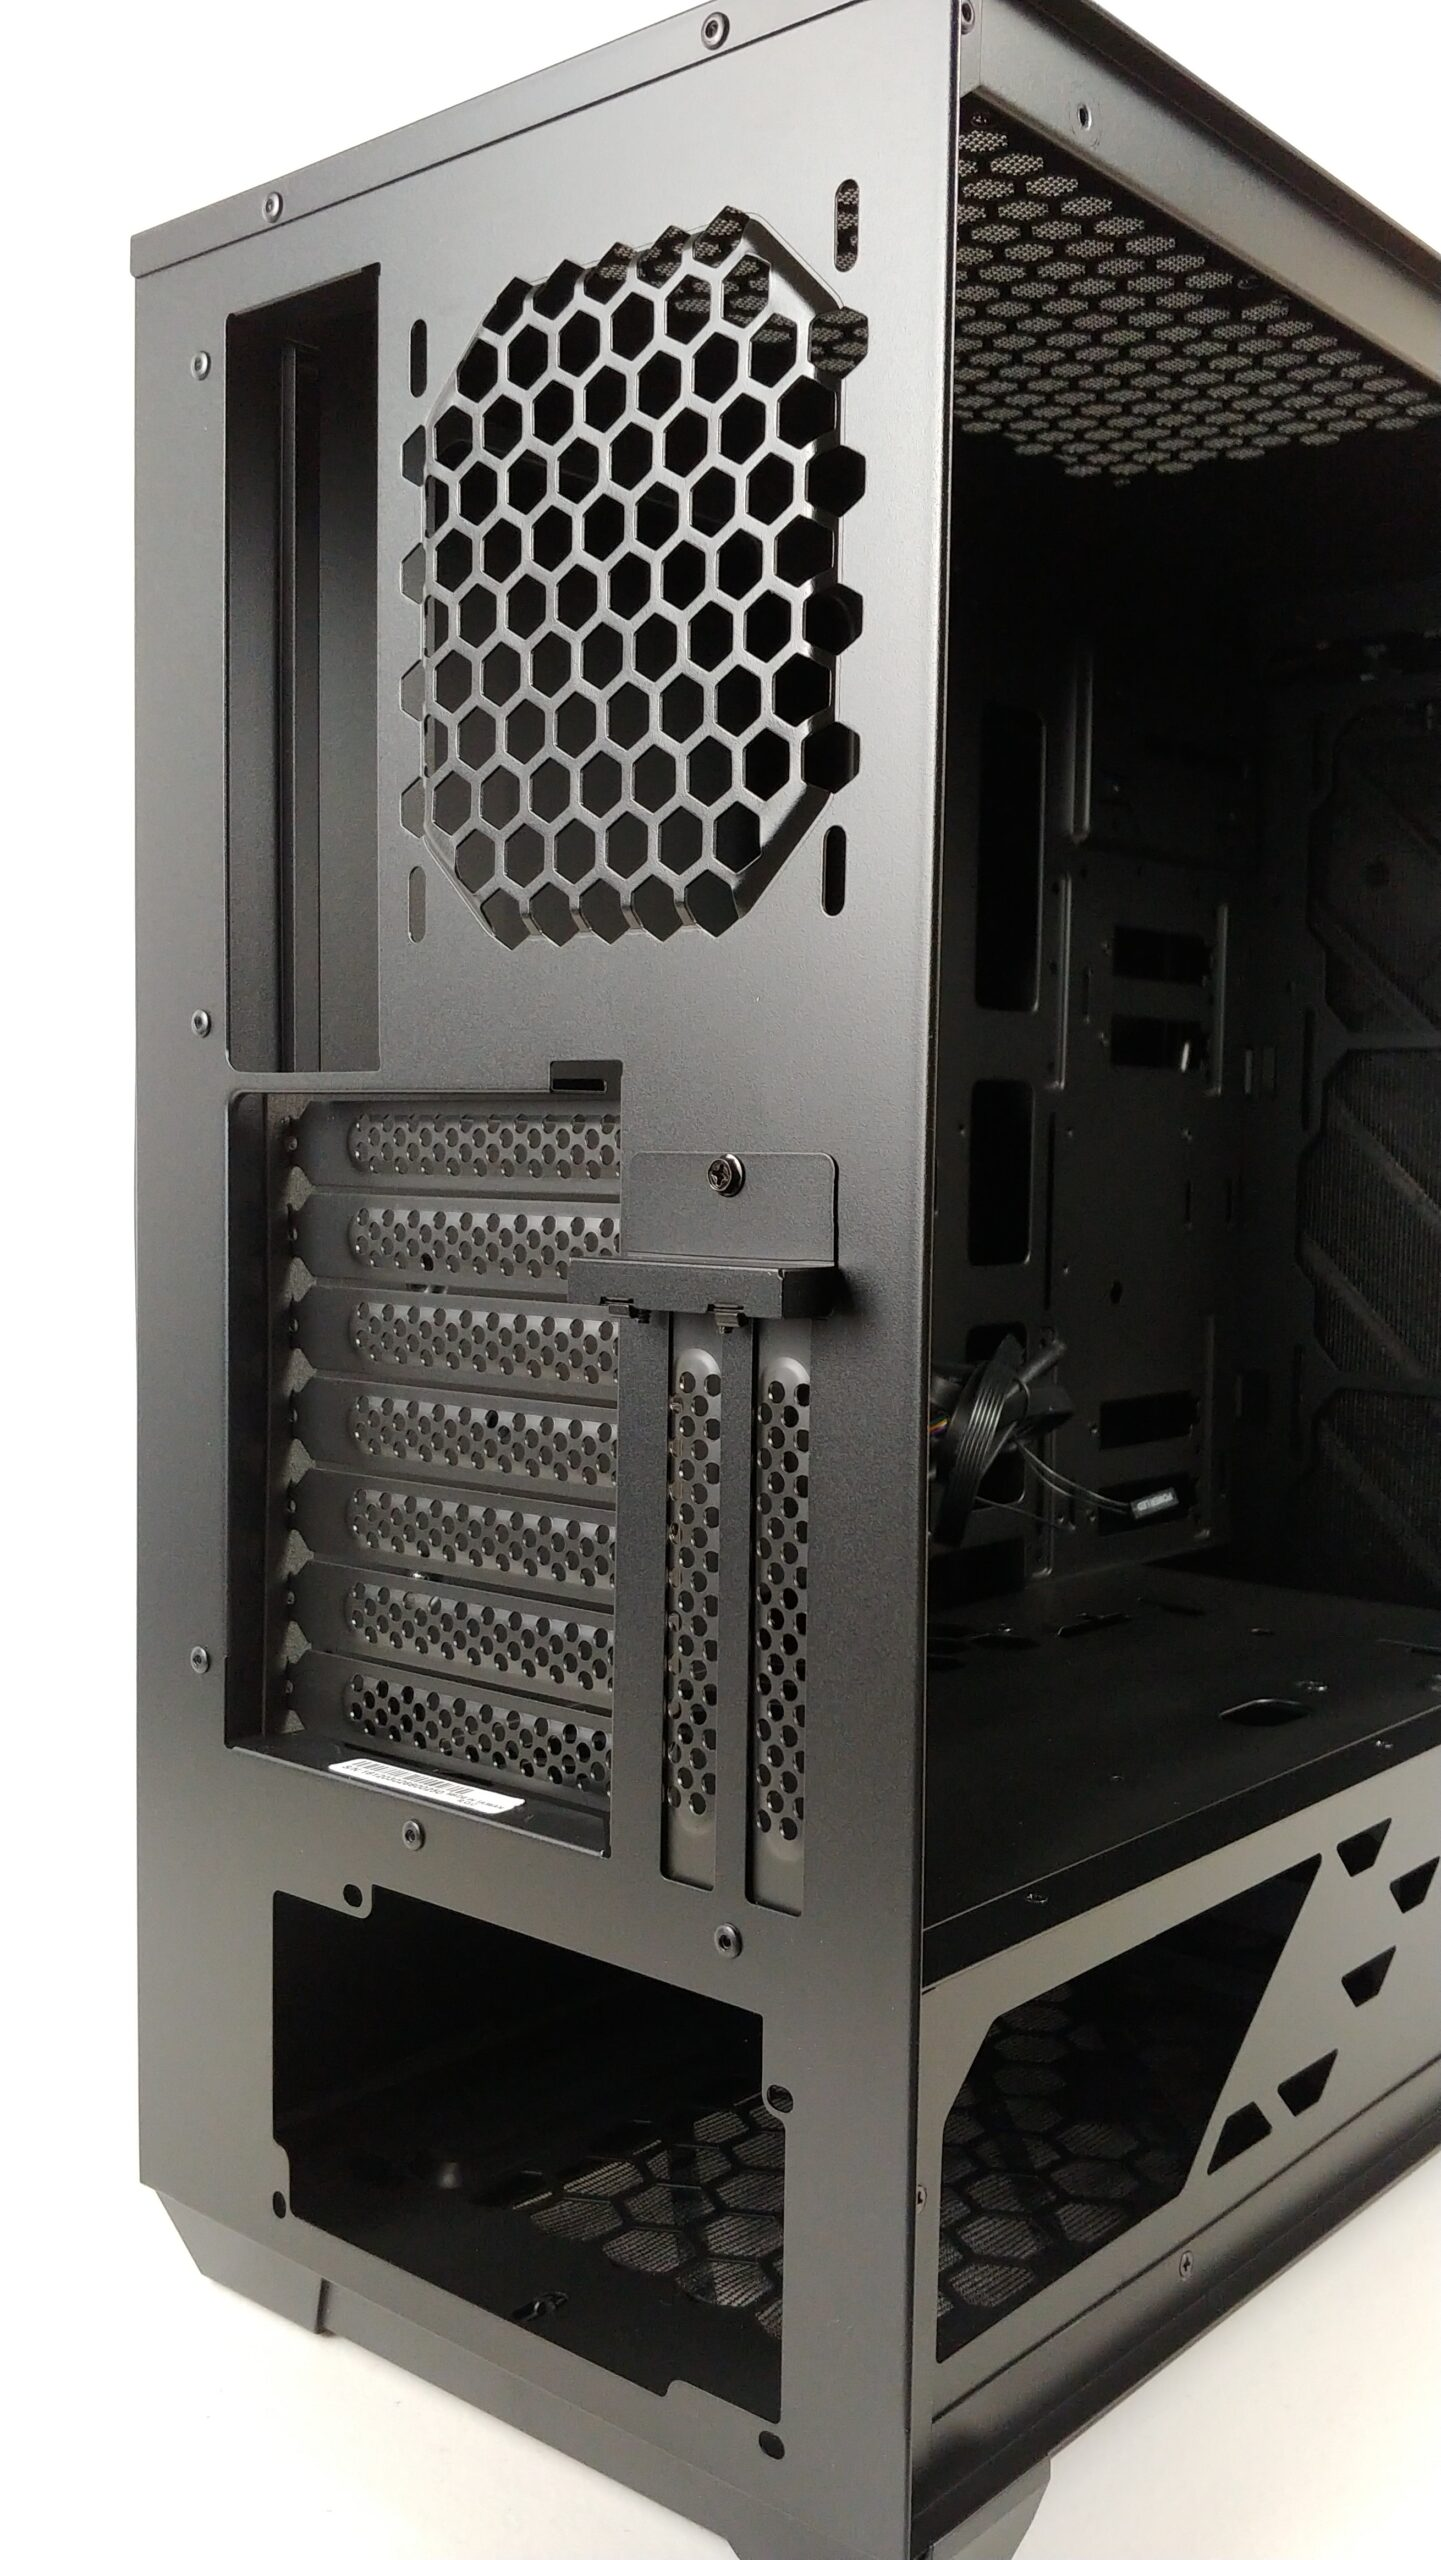 Close up back view of the InWin 216.